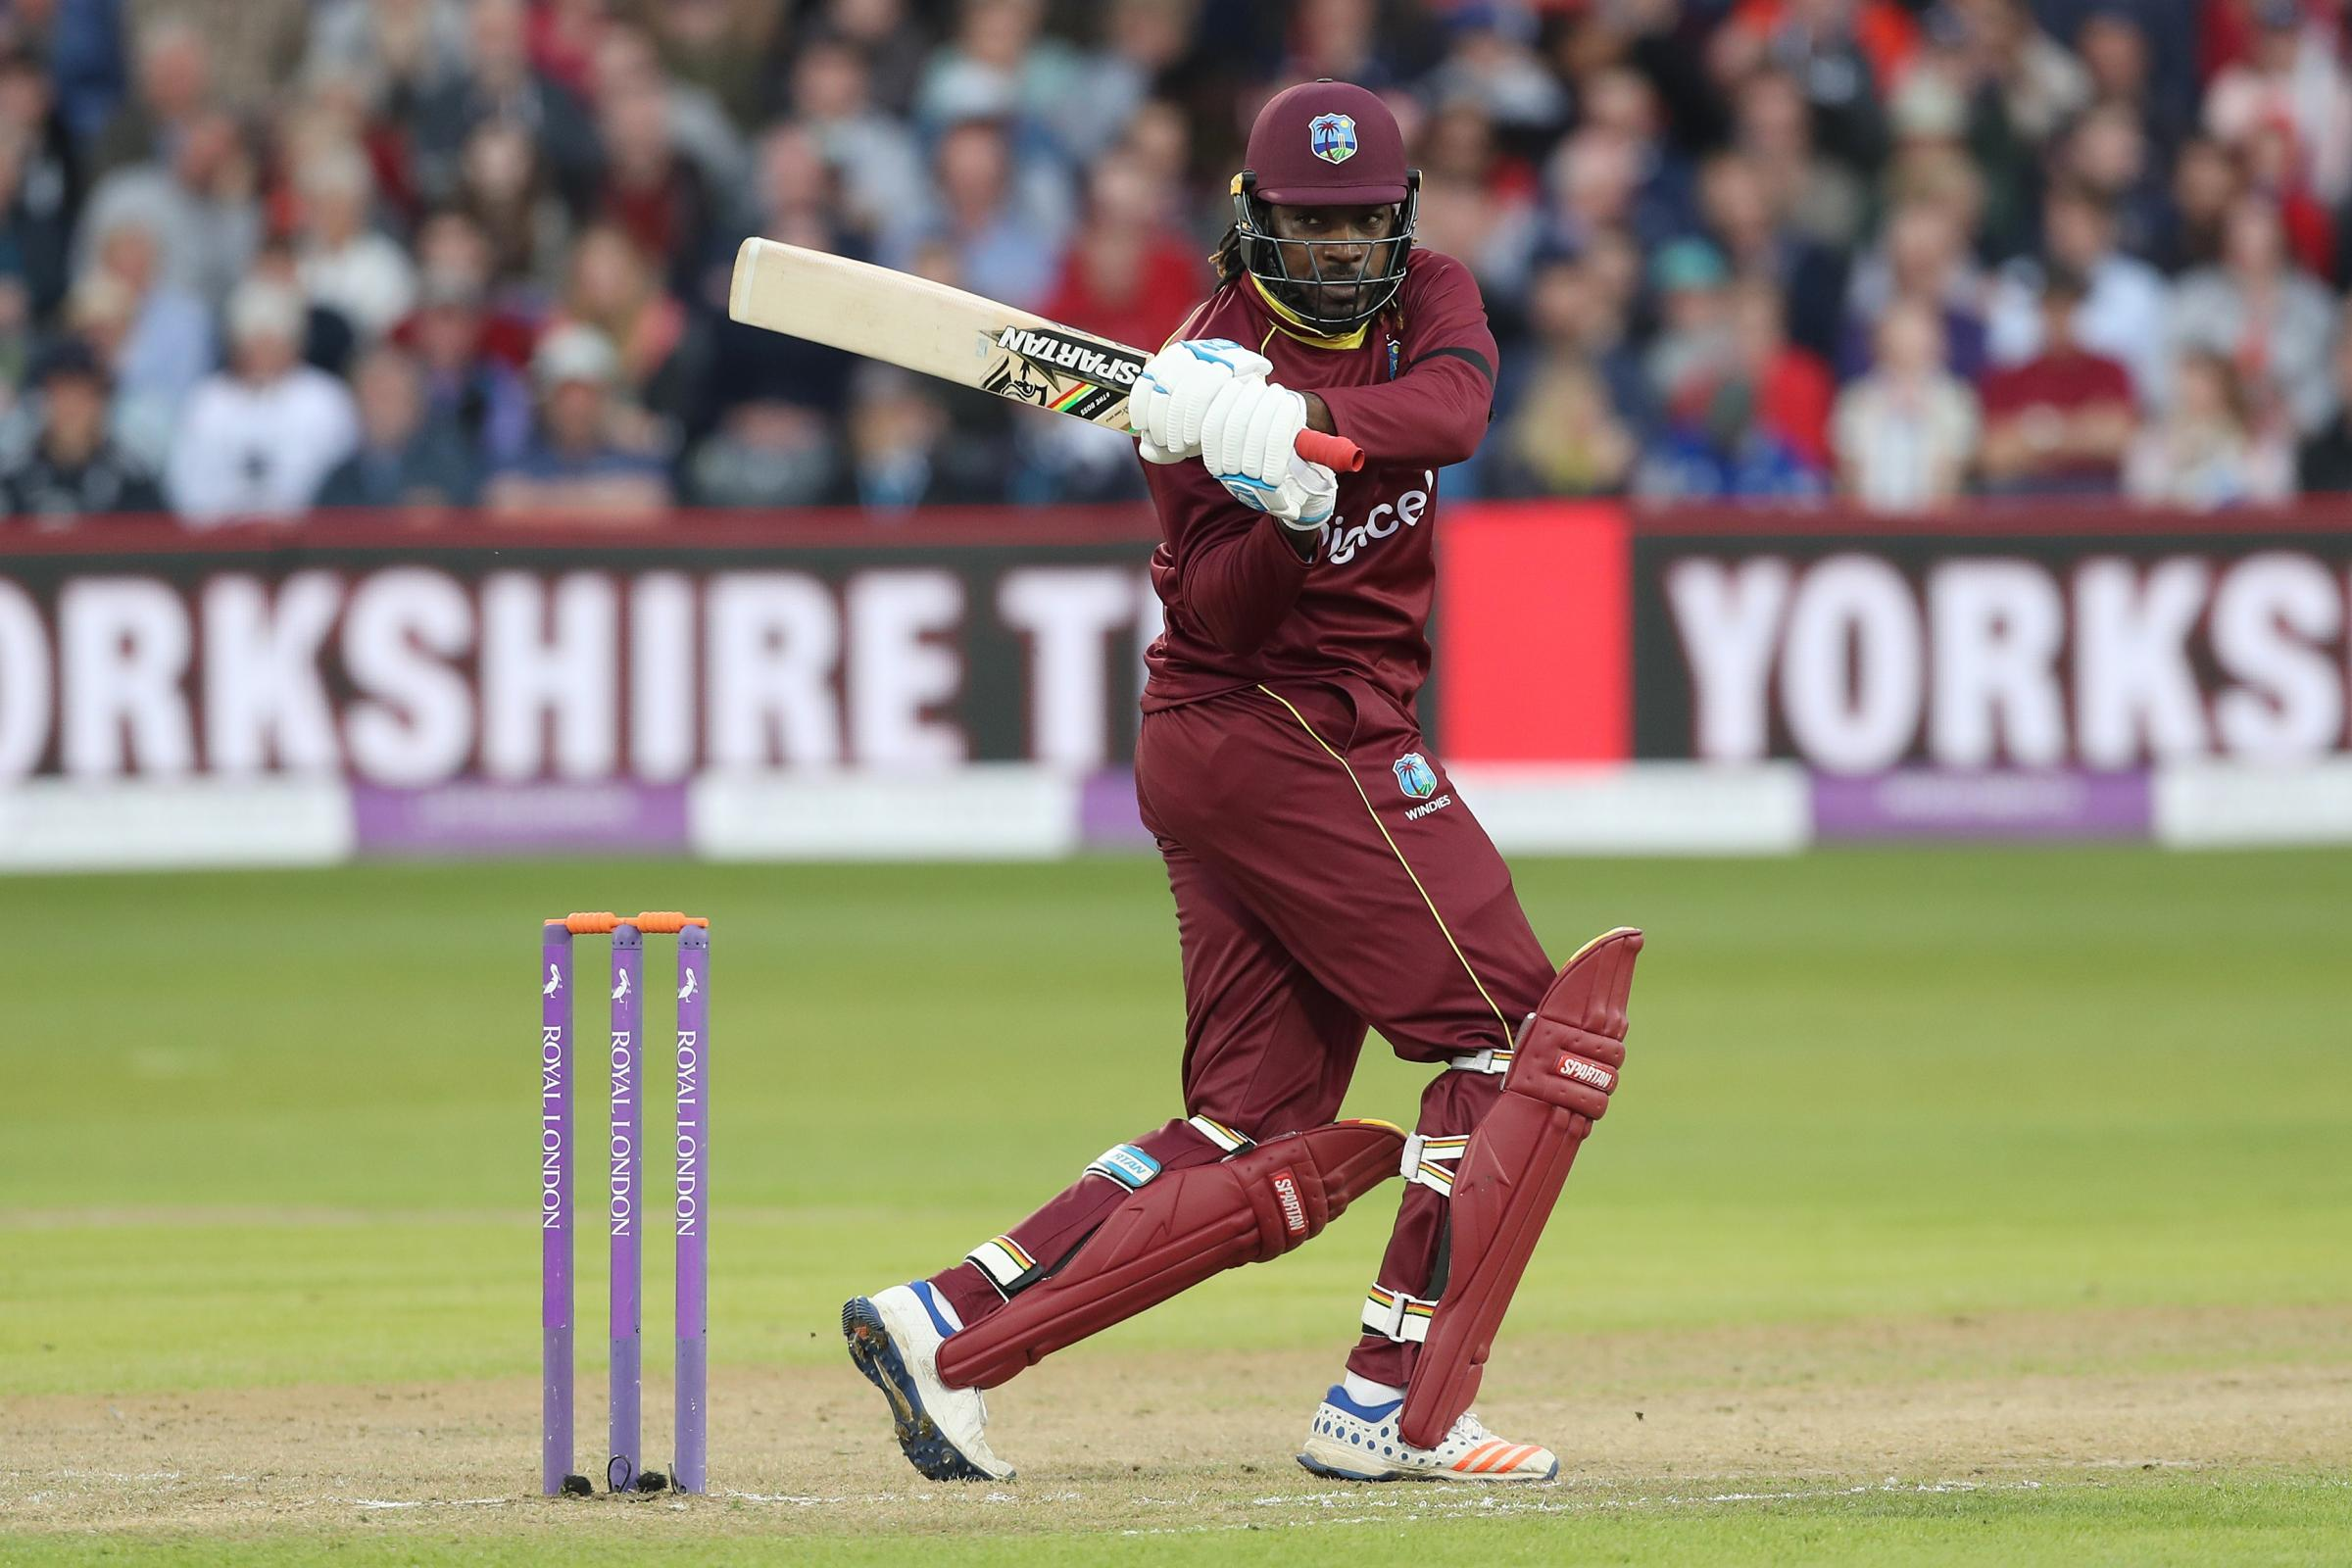 Chris Gayle has a major landmark in his sights